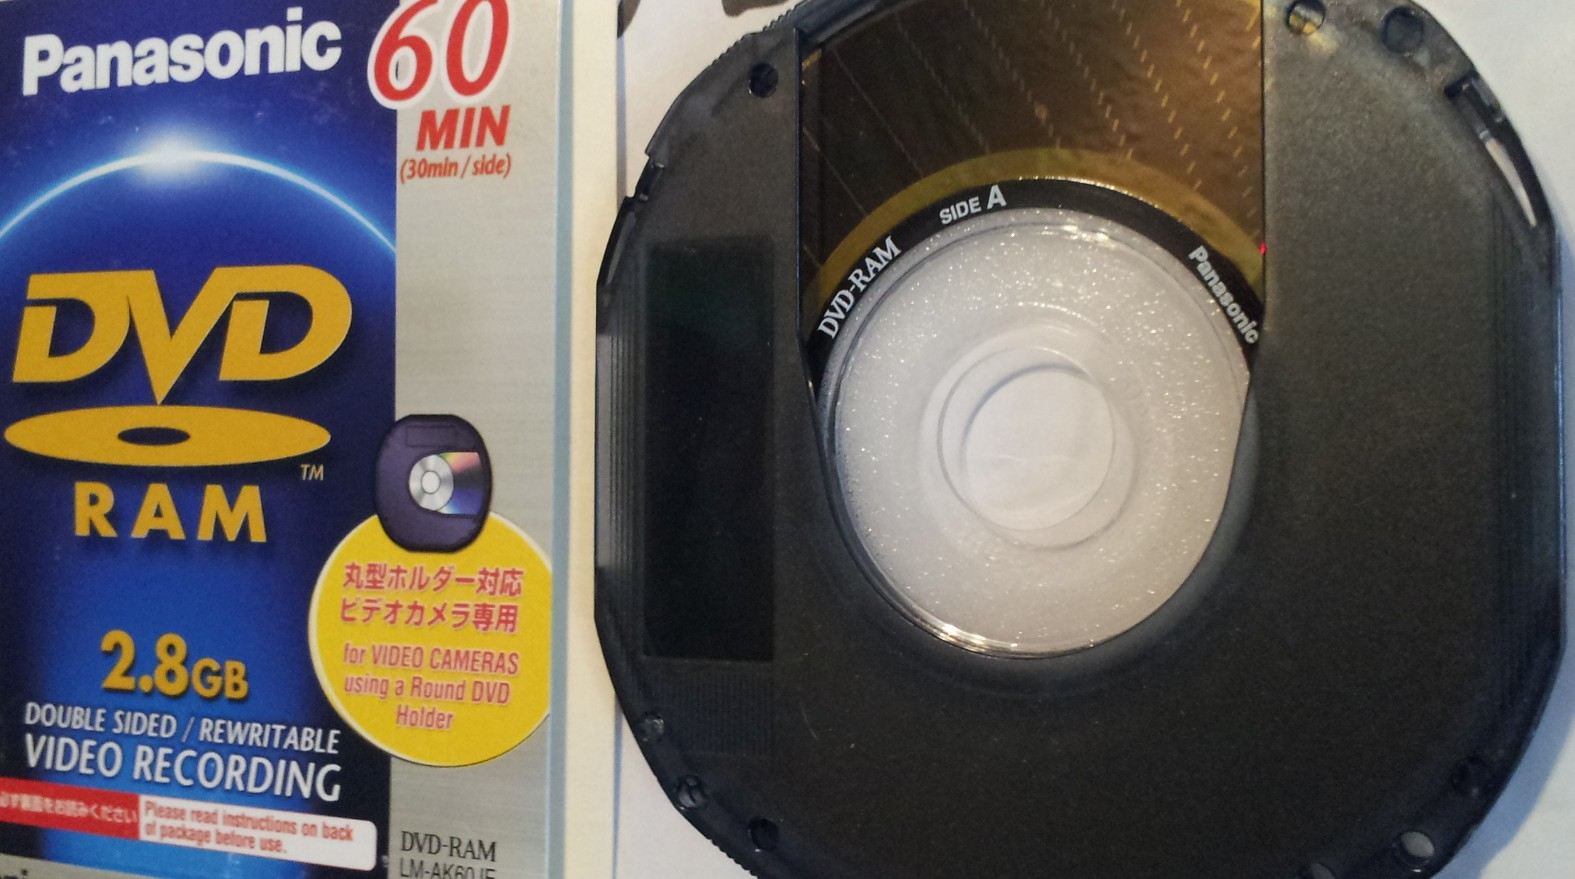 A Panasonic DVD-RAM disc shown with its jewel case cover. The disc is double sided 60 minutes 2.8GB and was used on a camcorder to record films. The disc was sent to us to recover the videos.